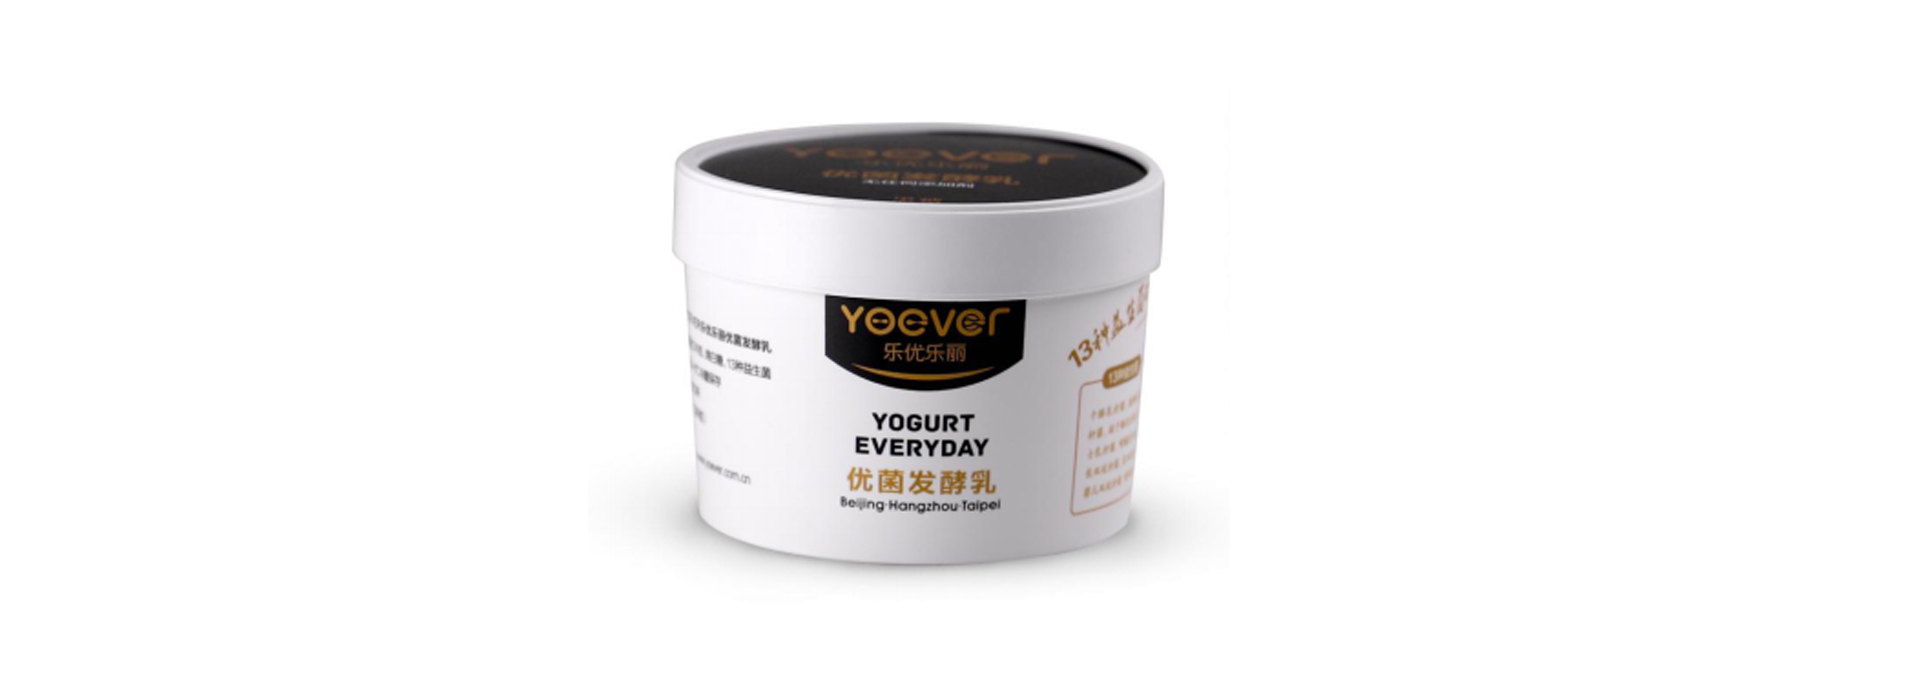 YN150g yogurt cup (with cover, holder, spoon)